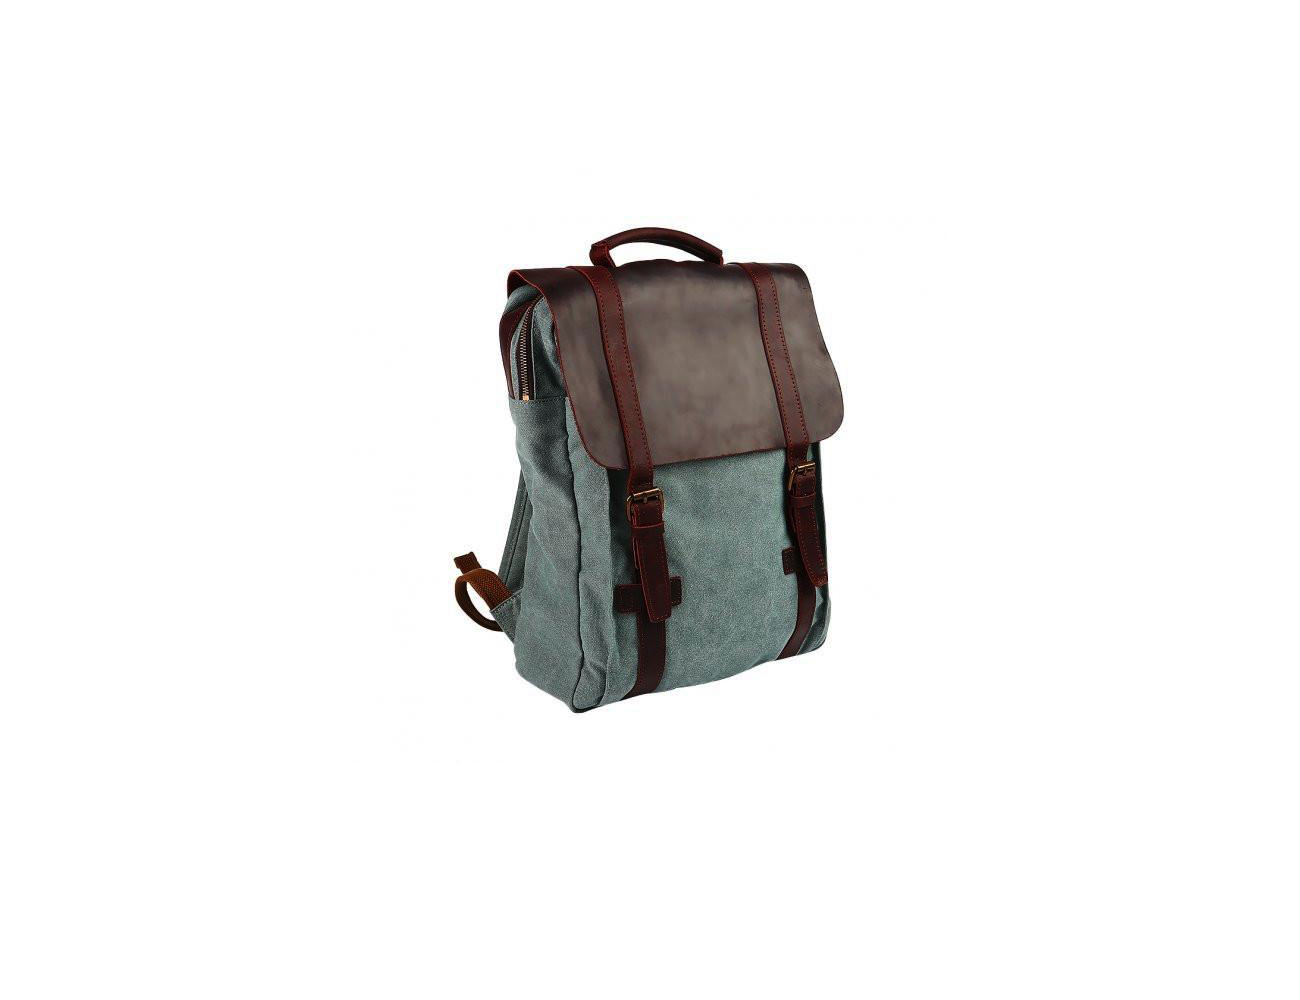 Protege Classic Canvas Travel Backpack